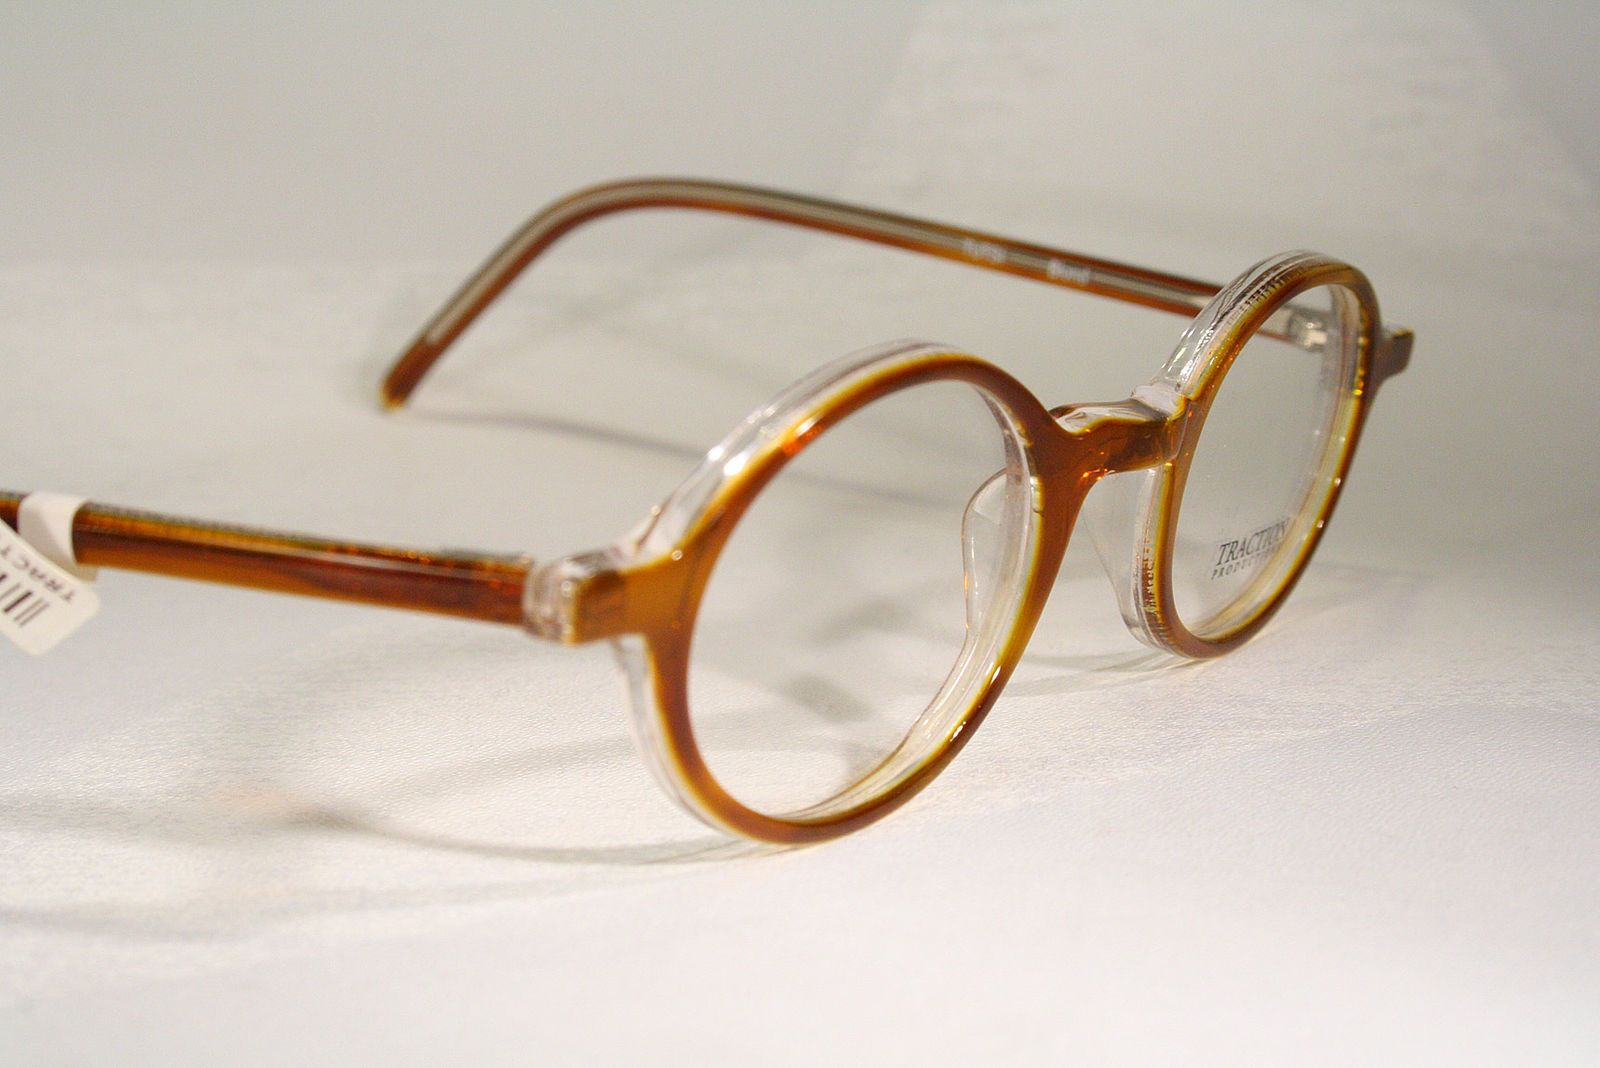 d80ae31f8018 TRACTION PRODUCTIONS  TUTSI Blond  Orange Small Round Eyeglass Frames Men  Women